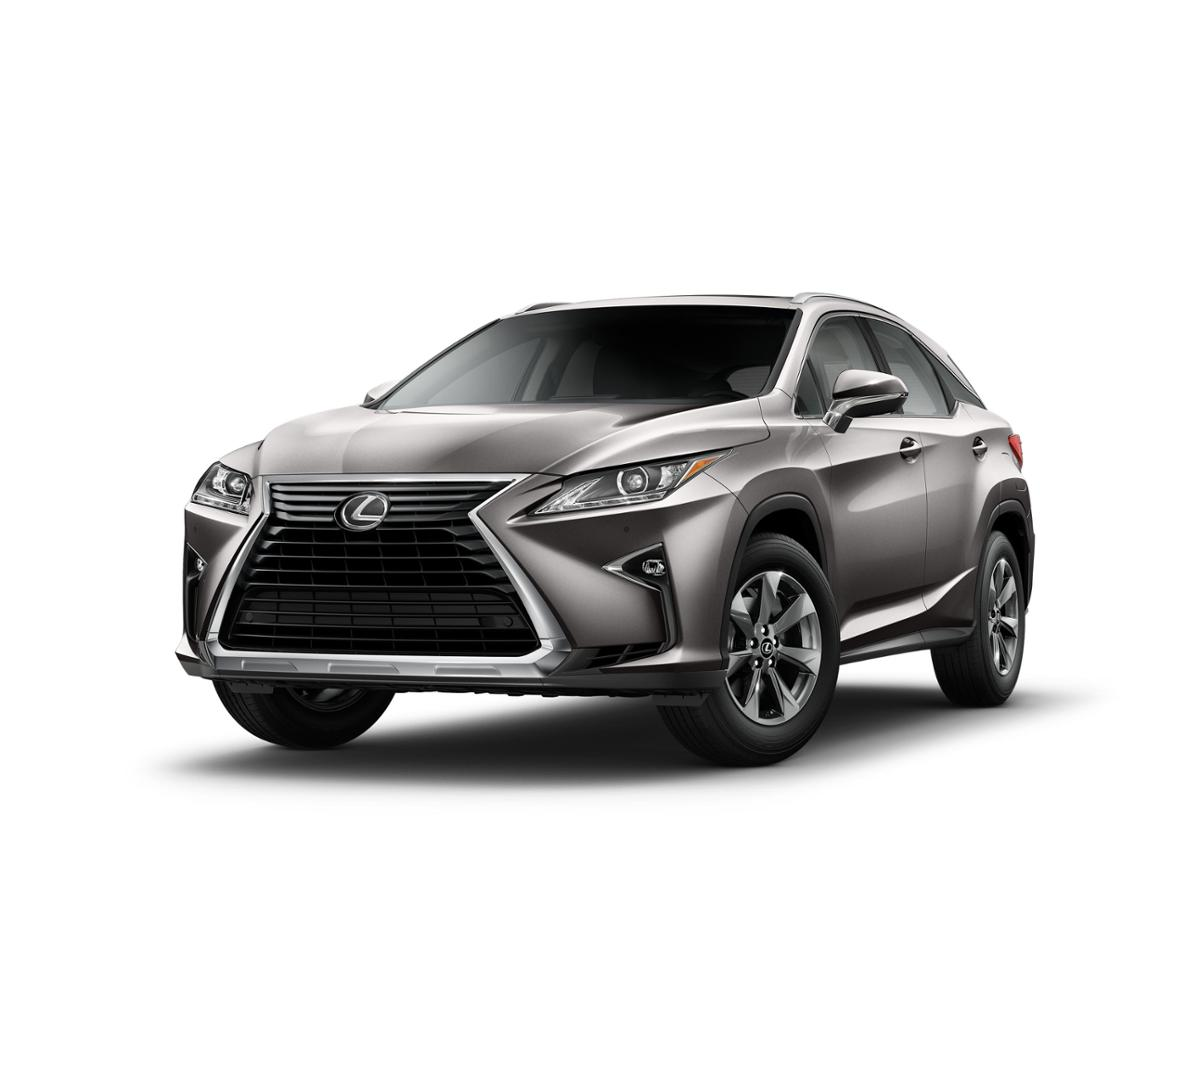 Owings Mills Lexus >> Owings Mills Atomic Silver 2018 Lexus RX 350: New Suv for ...